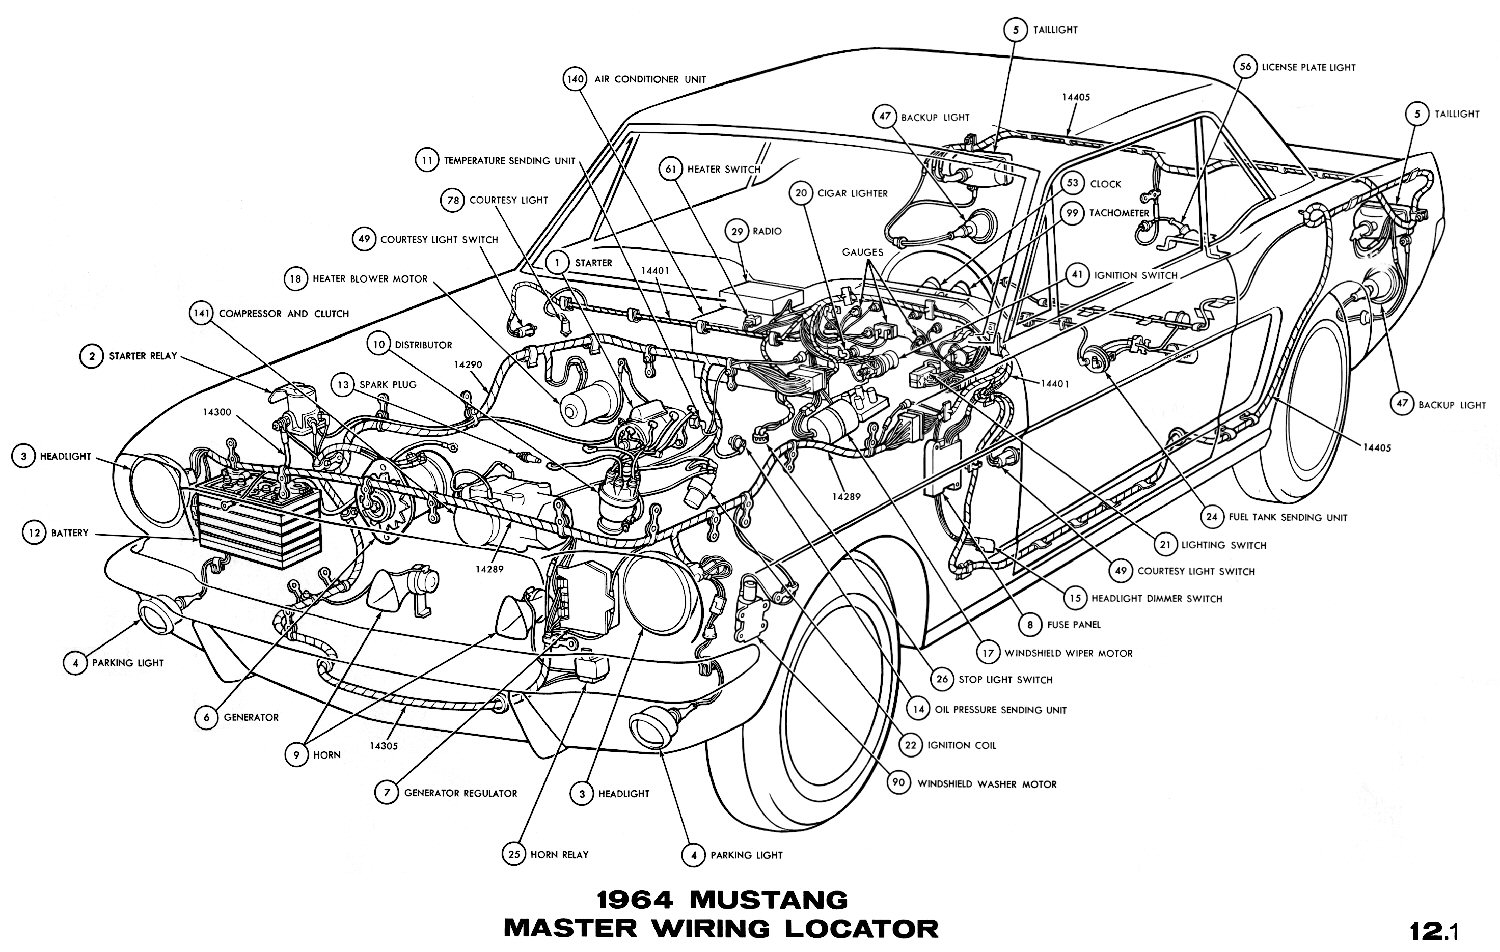 schematic drawing console mustang 1966